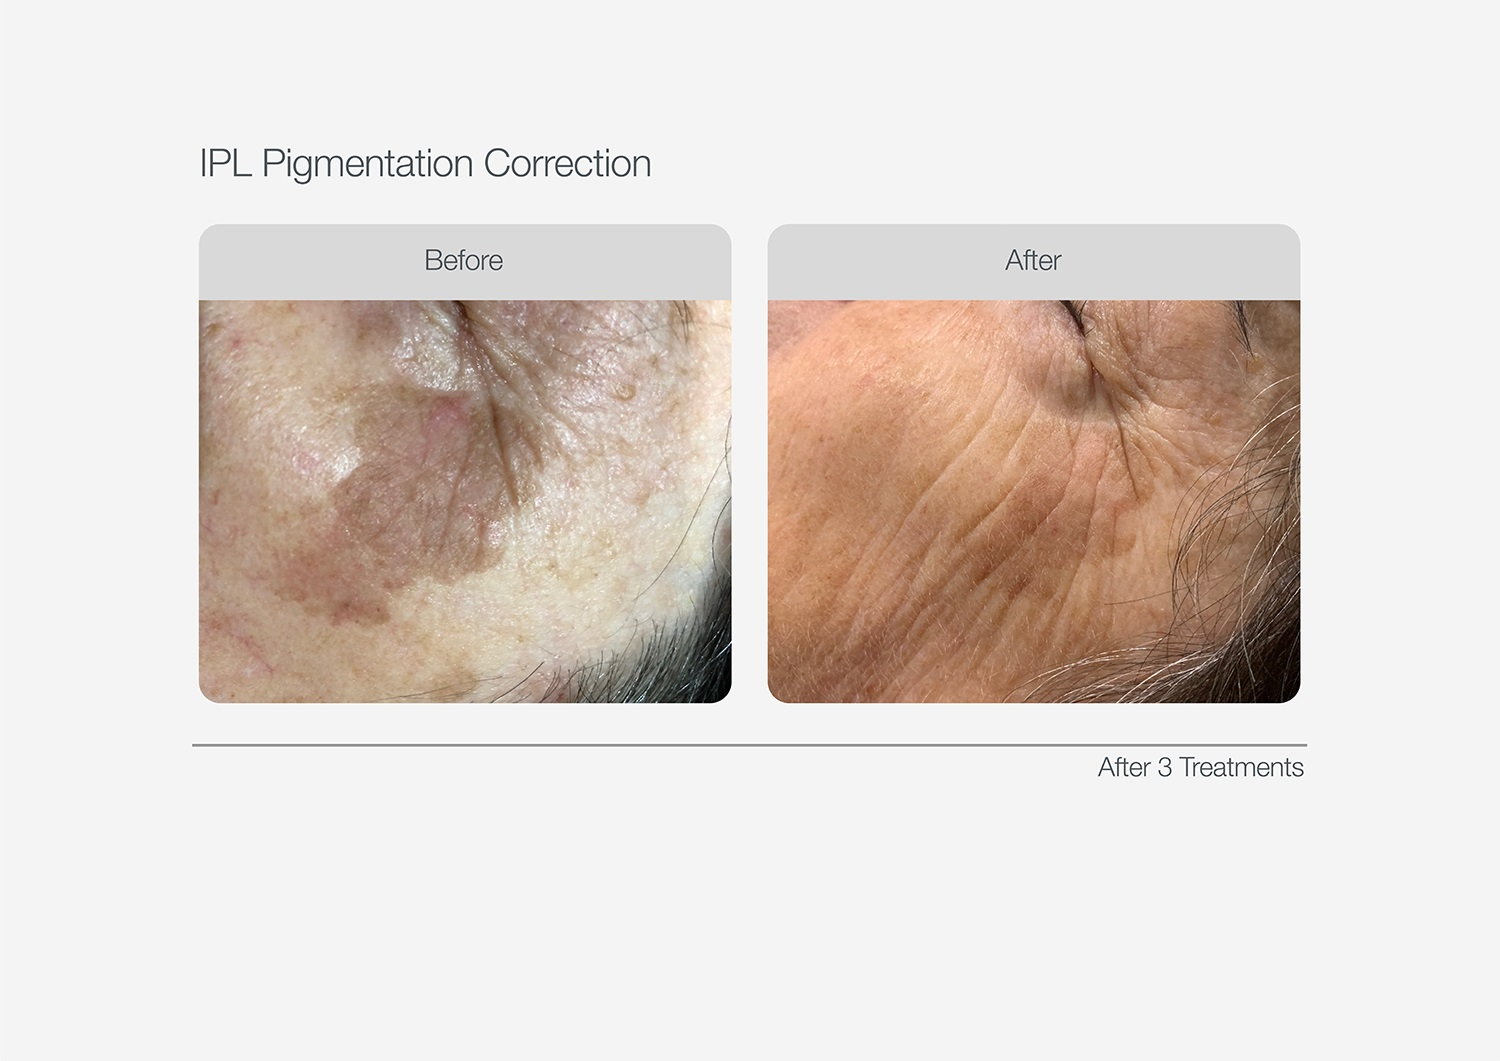 IPL-Pigmentation-Correction-Before-After-09